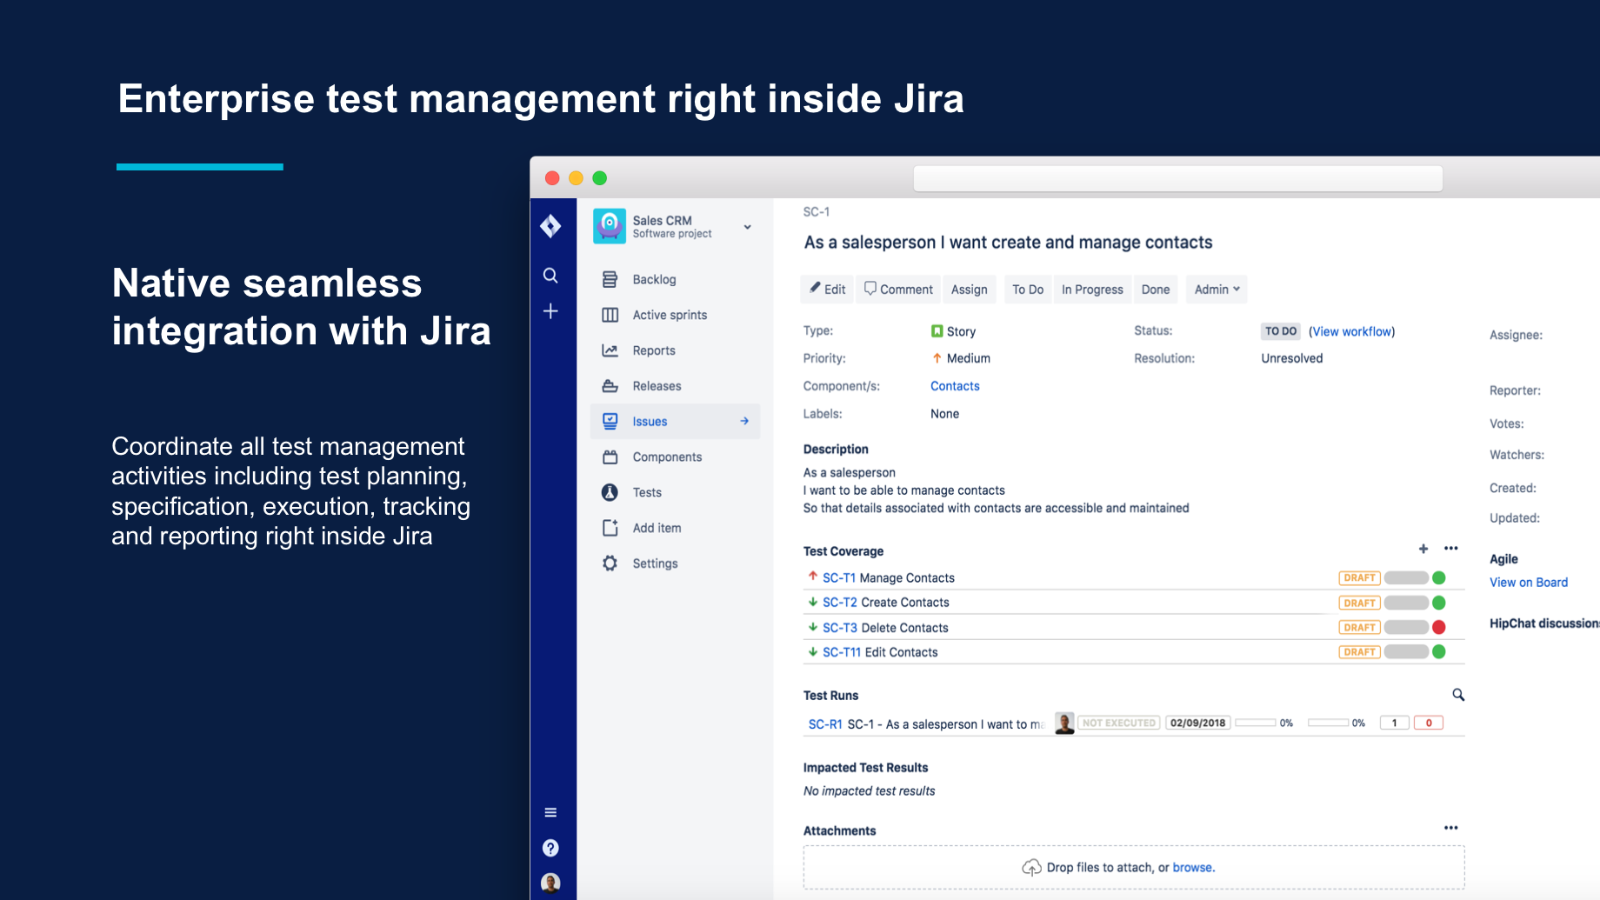 TM4J - Test Management for Jira 3